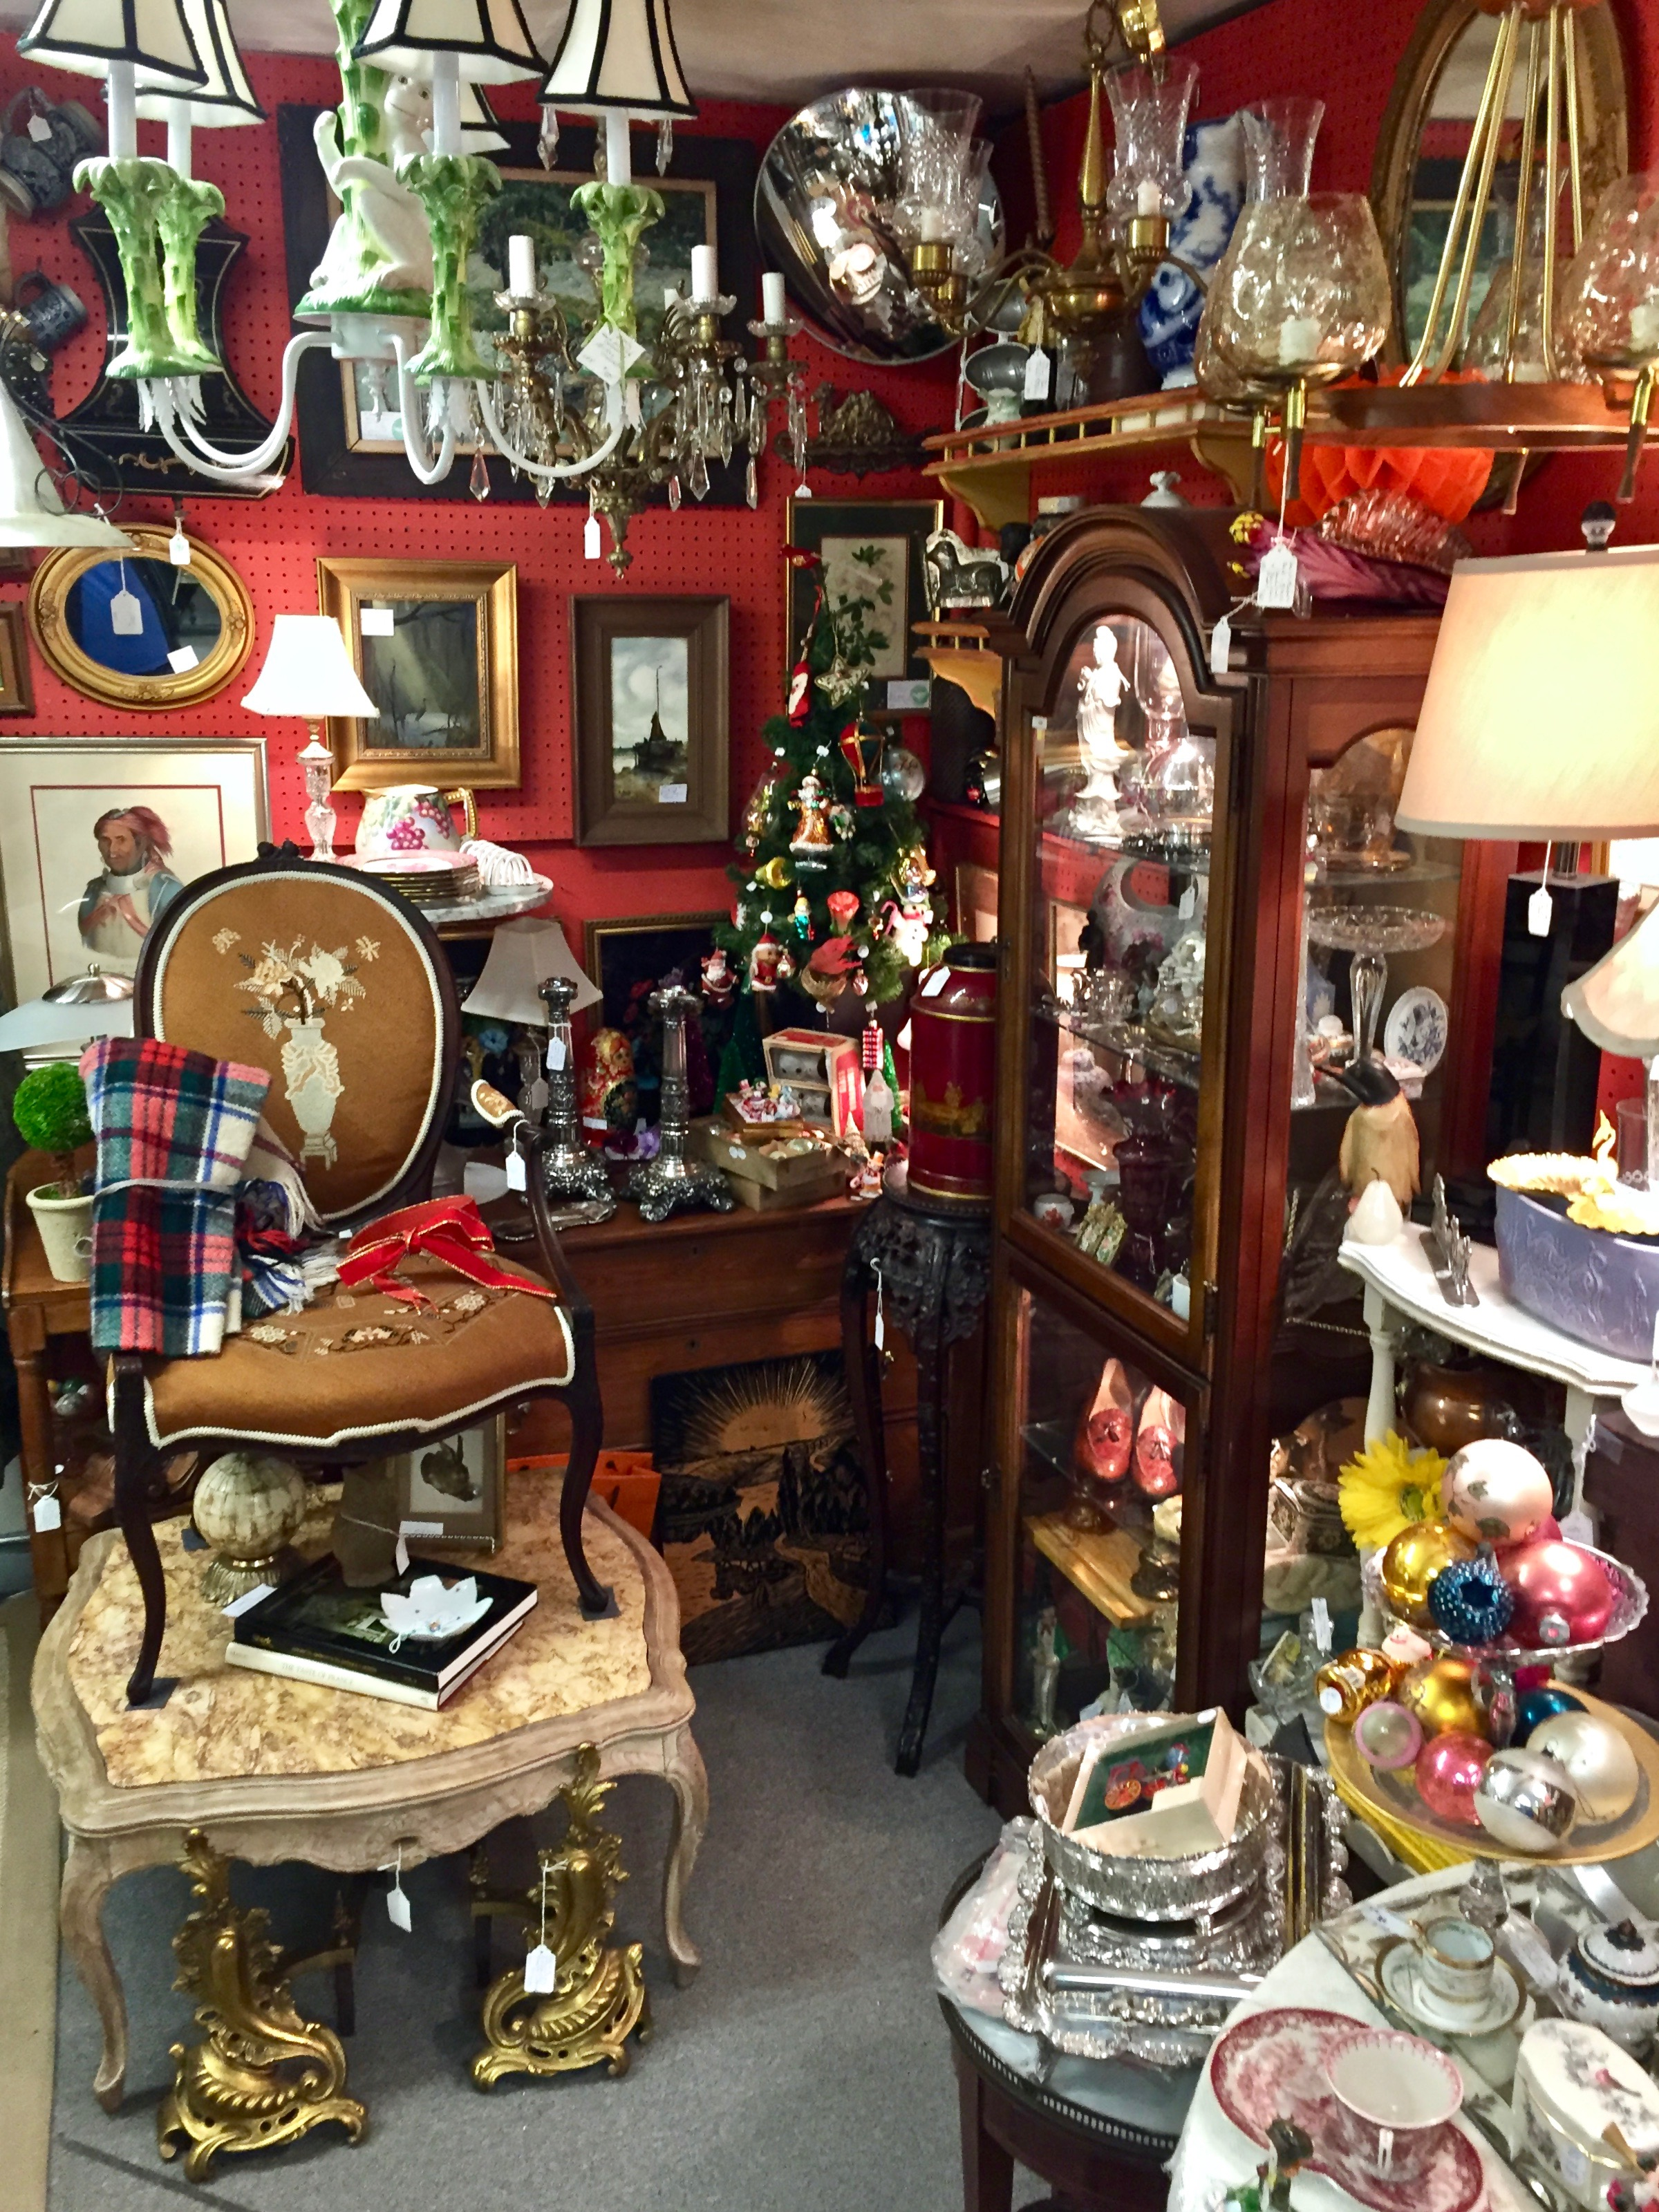 GB ANTIQUES   GB Antiques has been part of The Summit Antiques Center since 2009. Formerly, Gerrry kept a shop in South orange for 12 years. He offers a collection of decorative antiques, home furnishings, lighting and unusual objets d'art.